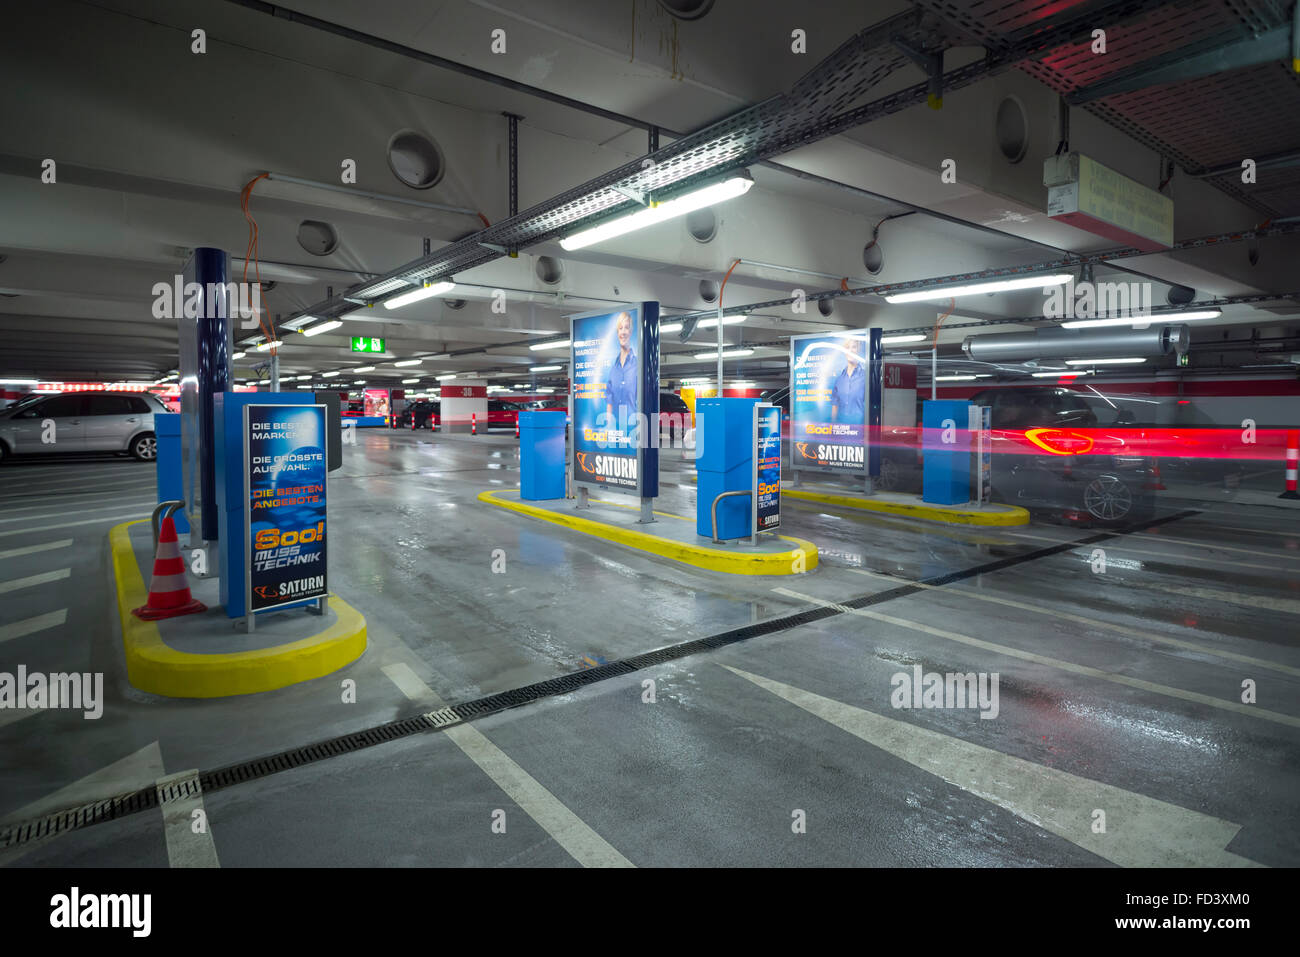 Entrance lane of a parking garage with barrier, ticket machines and advertisement boards - Stock Image